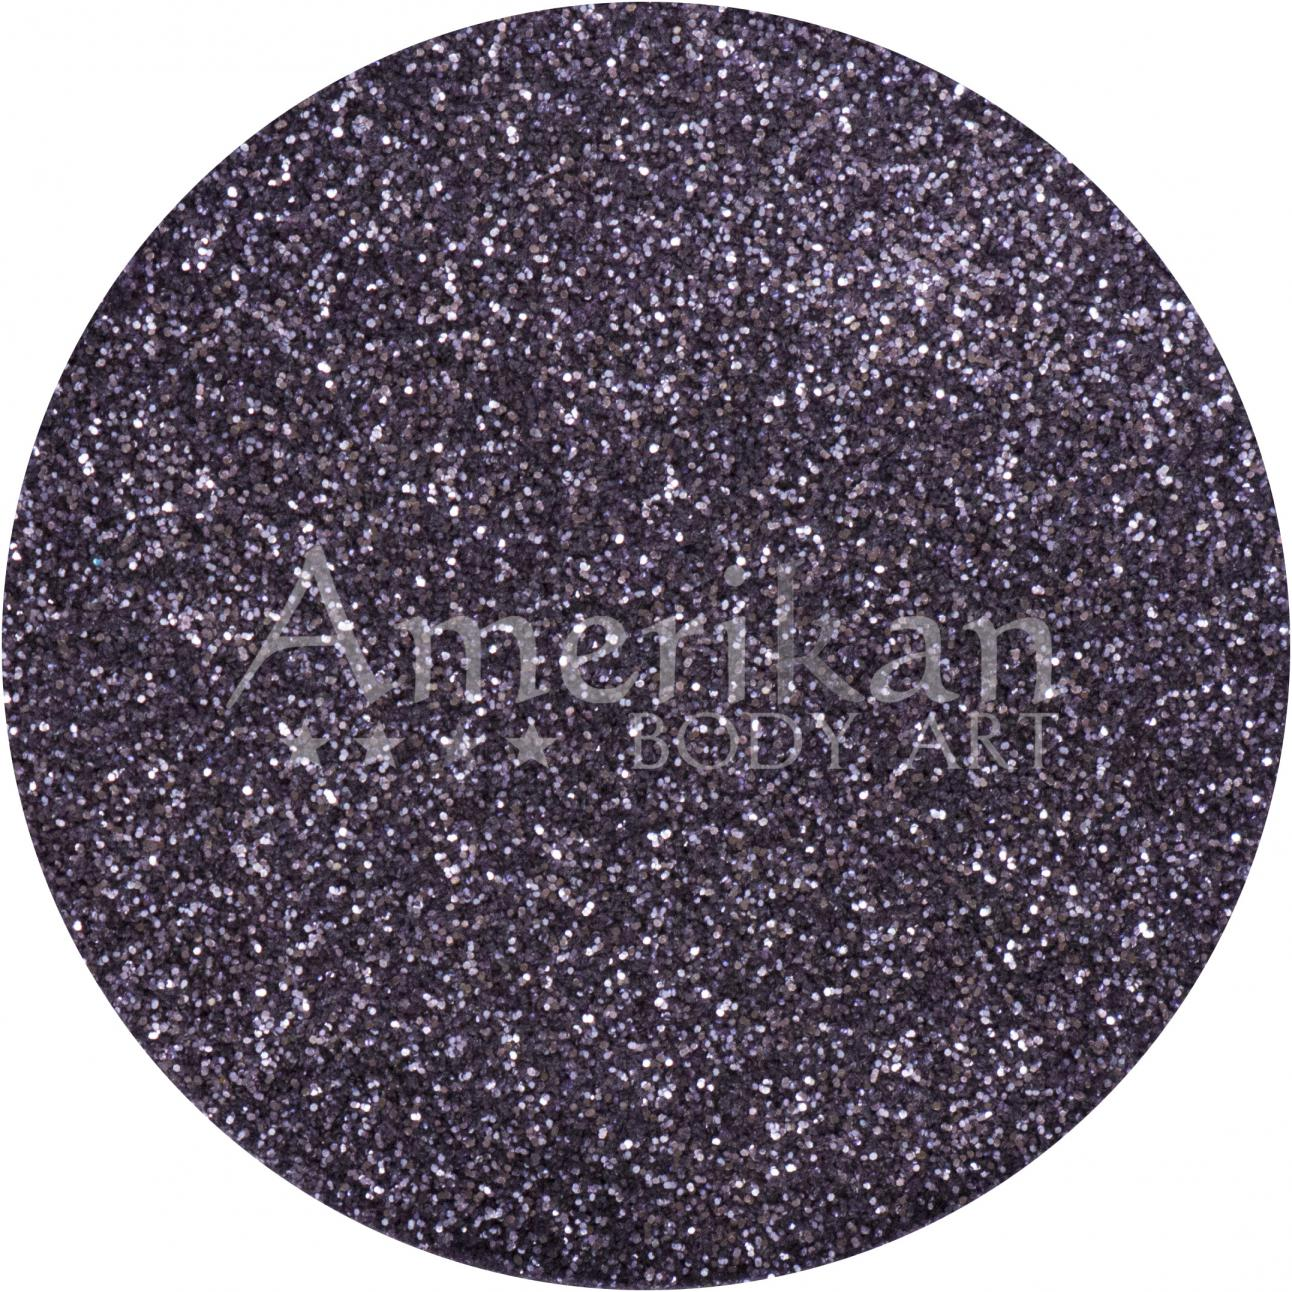 Violet Ocean-Safe Biodegradable Glitter (0.008